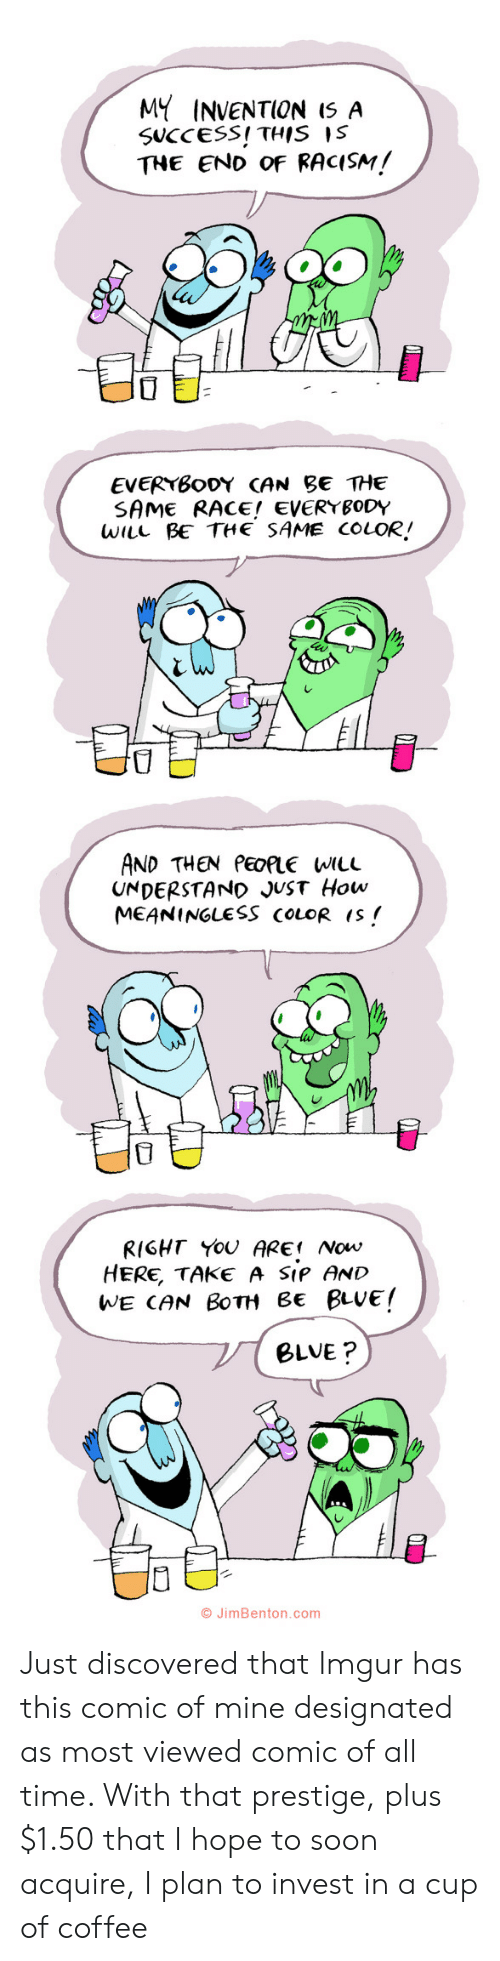 All Time: MY INVENTION I5 A  SUCCESS! THIS IS  THE END OF RACISM!  EVERYBODY CAN BE THE  SAME RACE! EVERYBODY  WILL BE THE SAME COLOR!  AND THEN PEOPLE WILL  UNDERSTAND JUST How  MEANINGLESS COLOR IS  RIGHT YOU ARE Now  HERE, TAKE A SIP AND  WE CAN BOTH Be BLUE!  BLVE?  O JimBenton.com  י Just discovered that Imgur has this comic of mine designated as most viewed comic of all time. With that prestige, plus $1.50 that I hope to soon acquire, I plan to invest in a cup of coffee